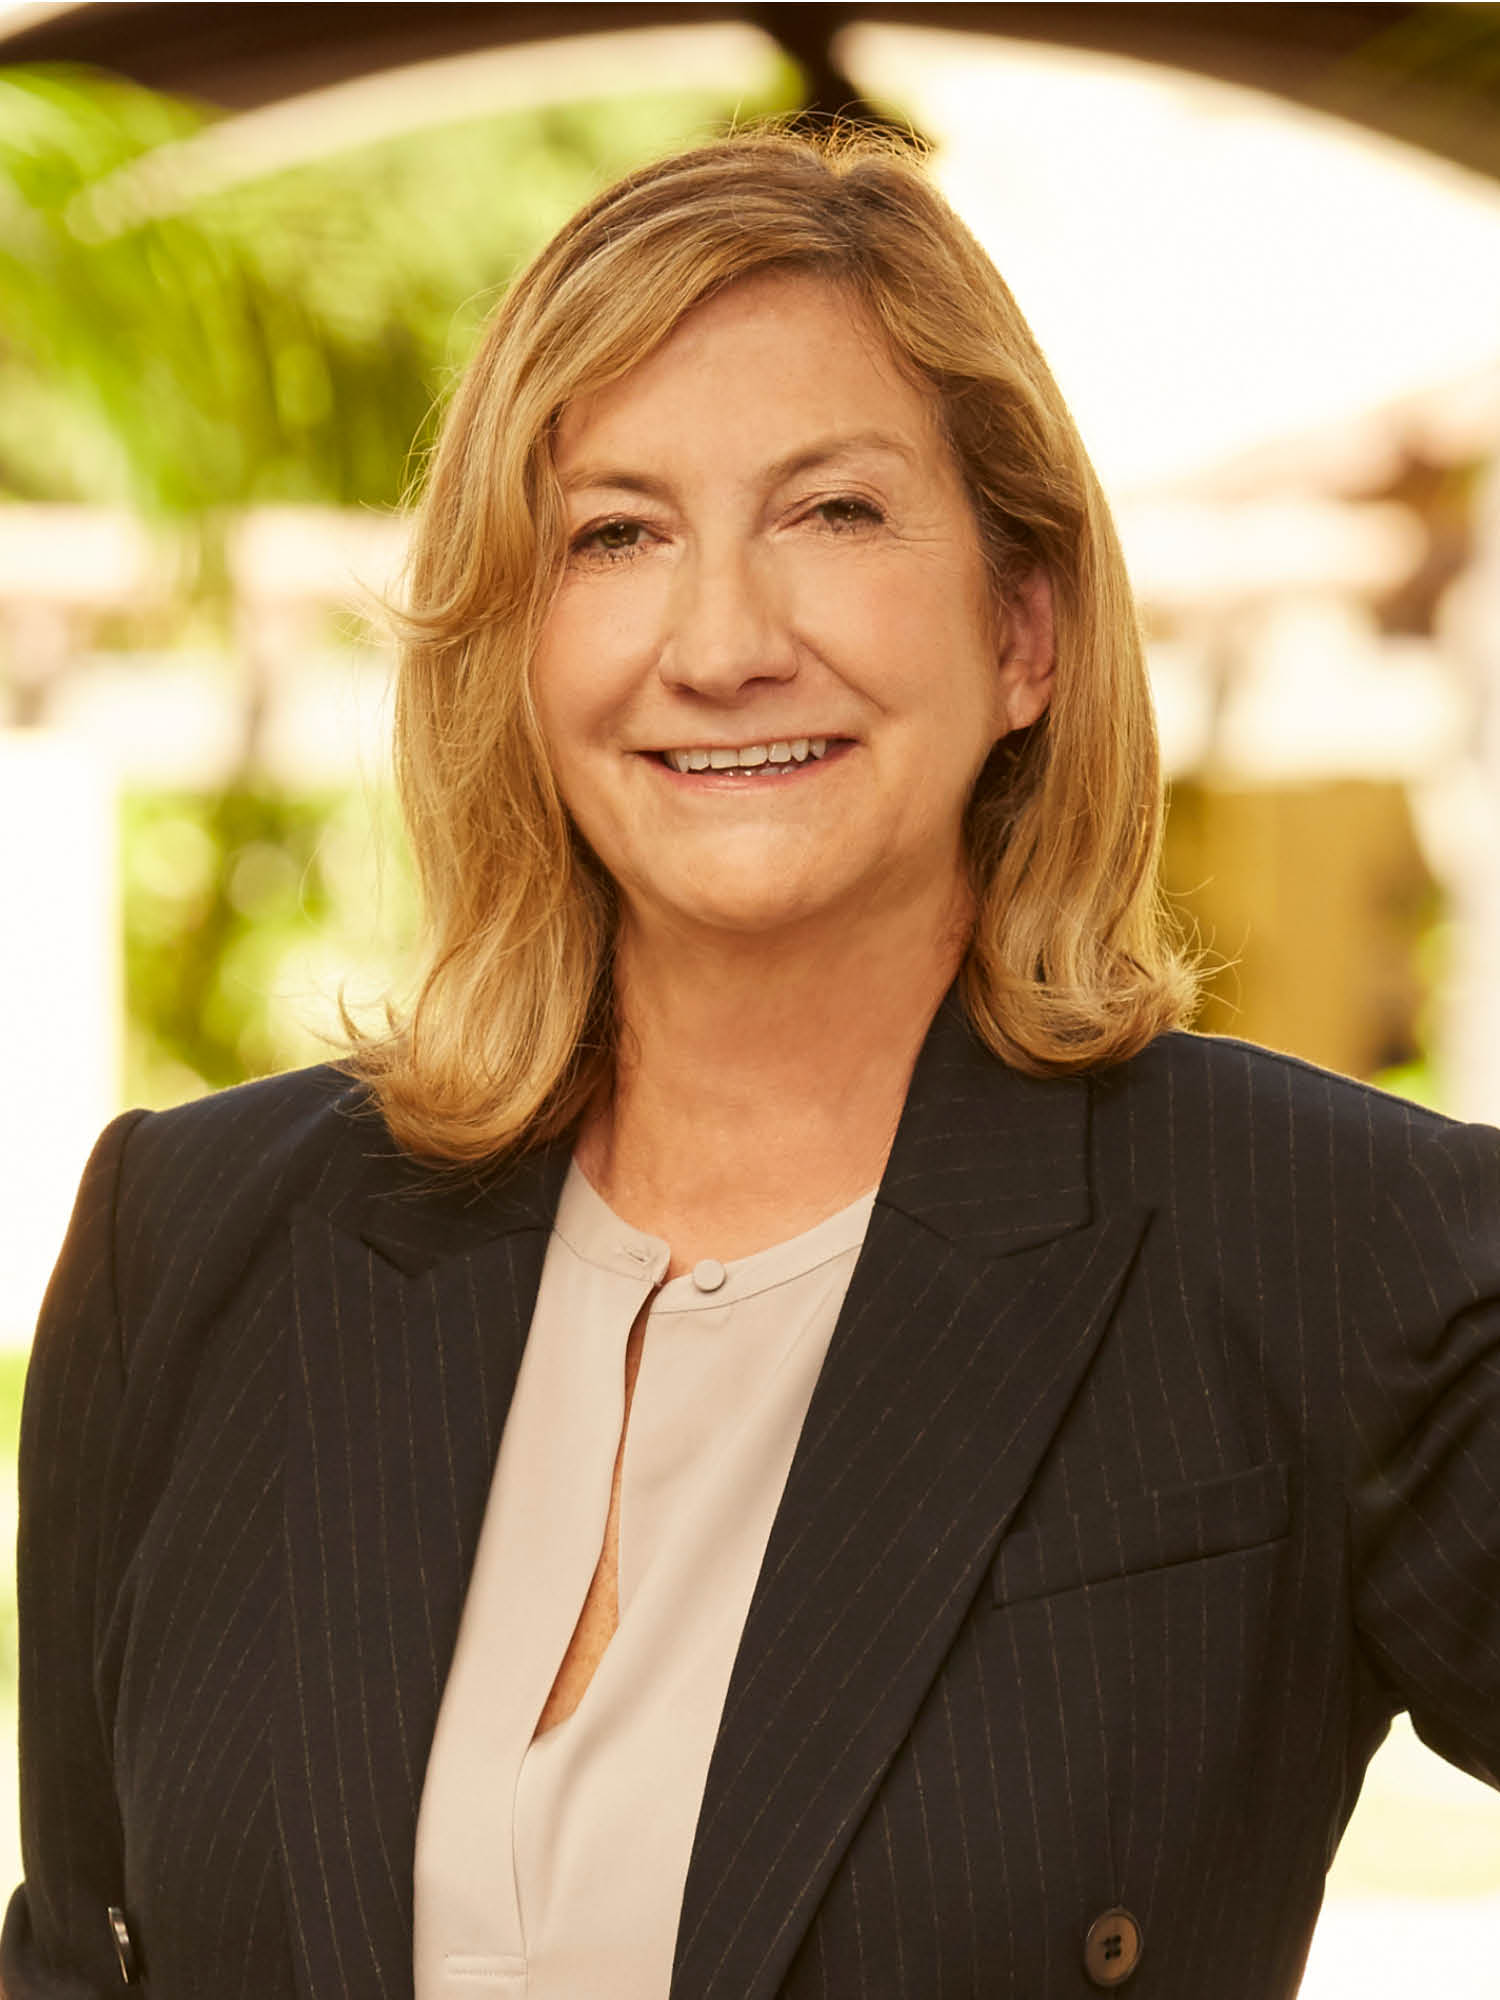 Lily Zanardi, a top realtor in South Florida for Corcoran, a real estate firm in Miami Beach.